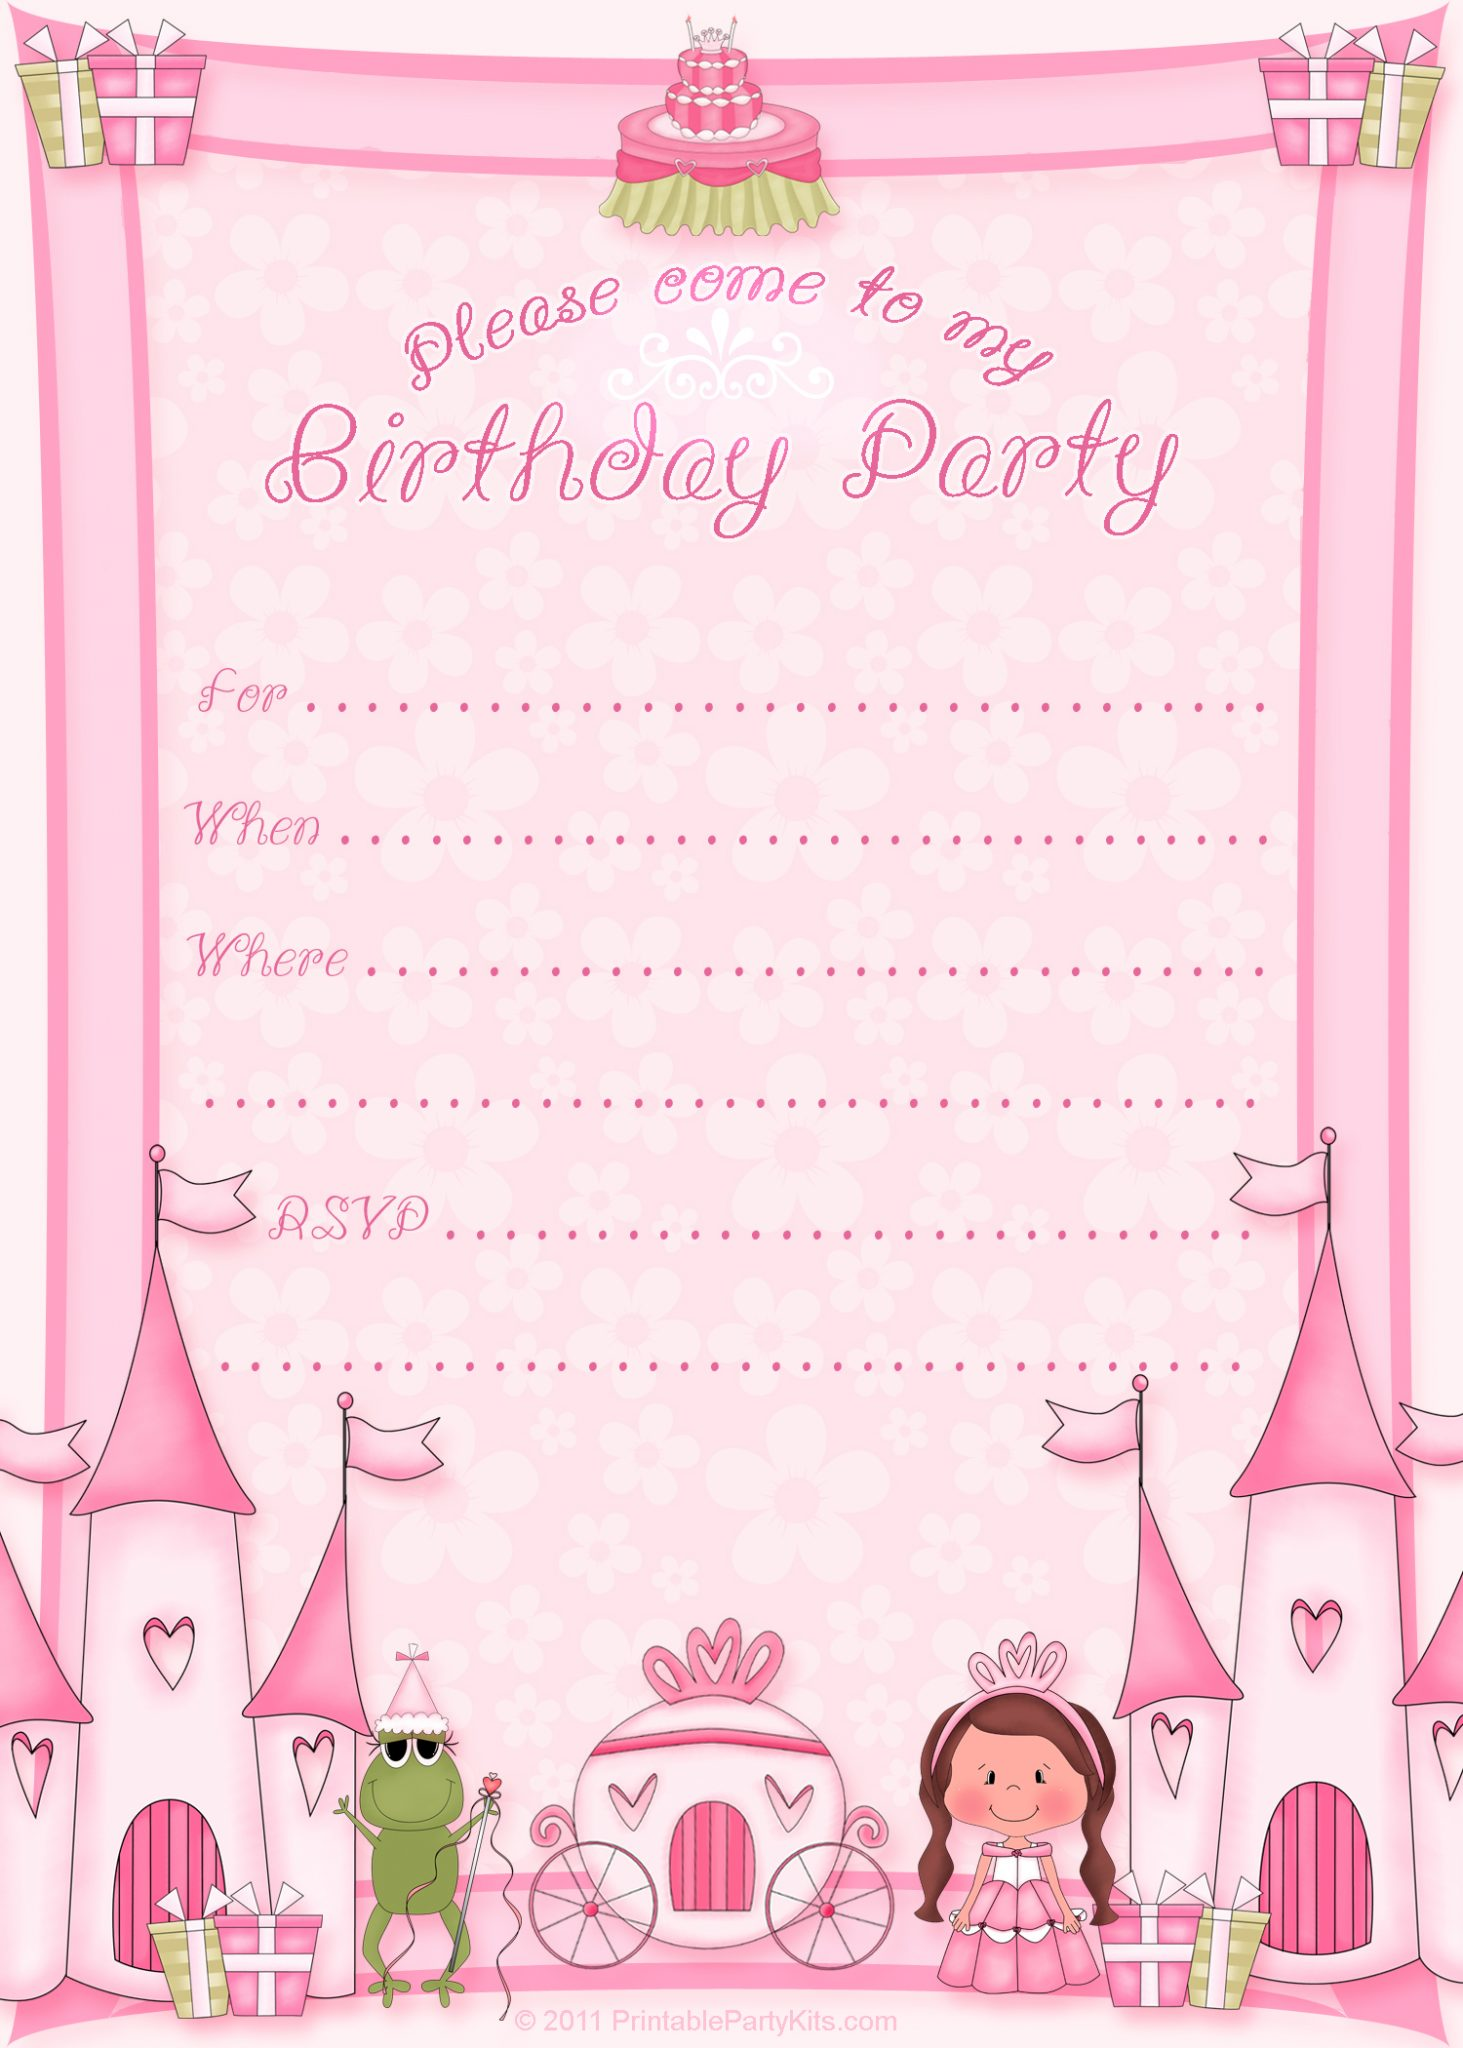 50 Free Birthday Invitation Templates You Will Love These – First Birthday Invitation Templates Free